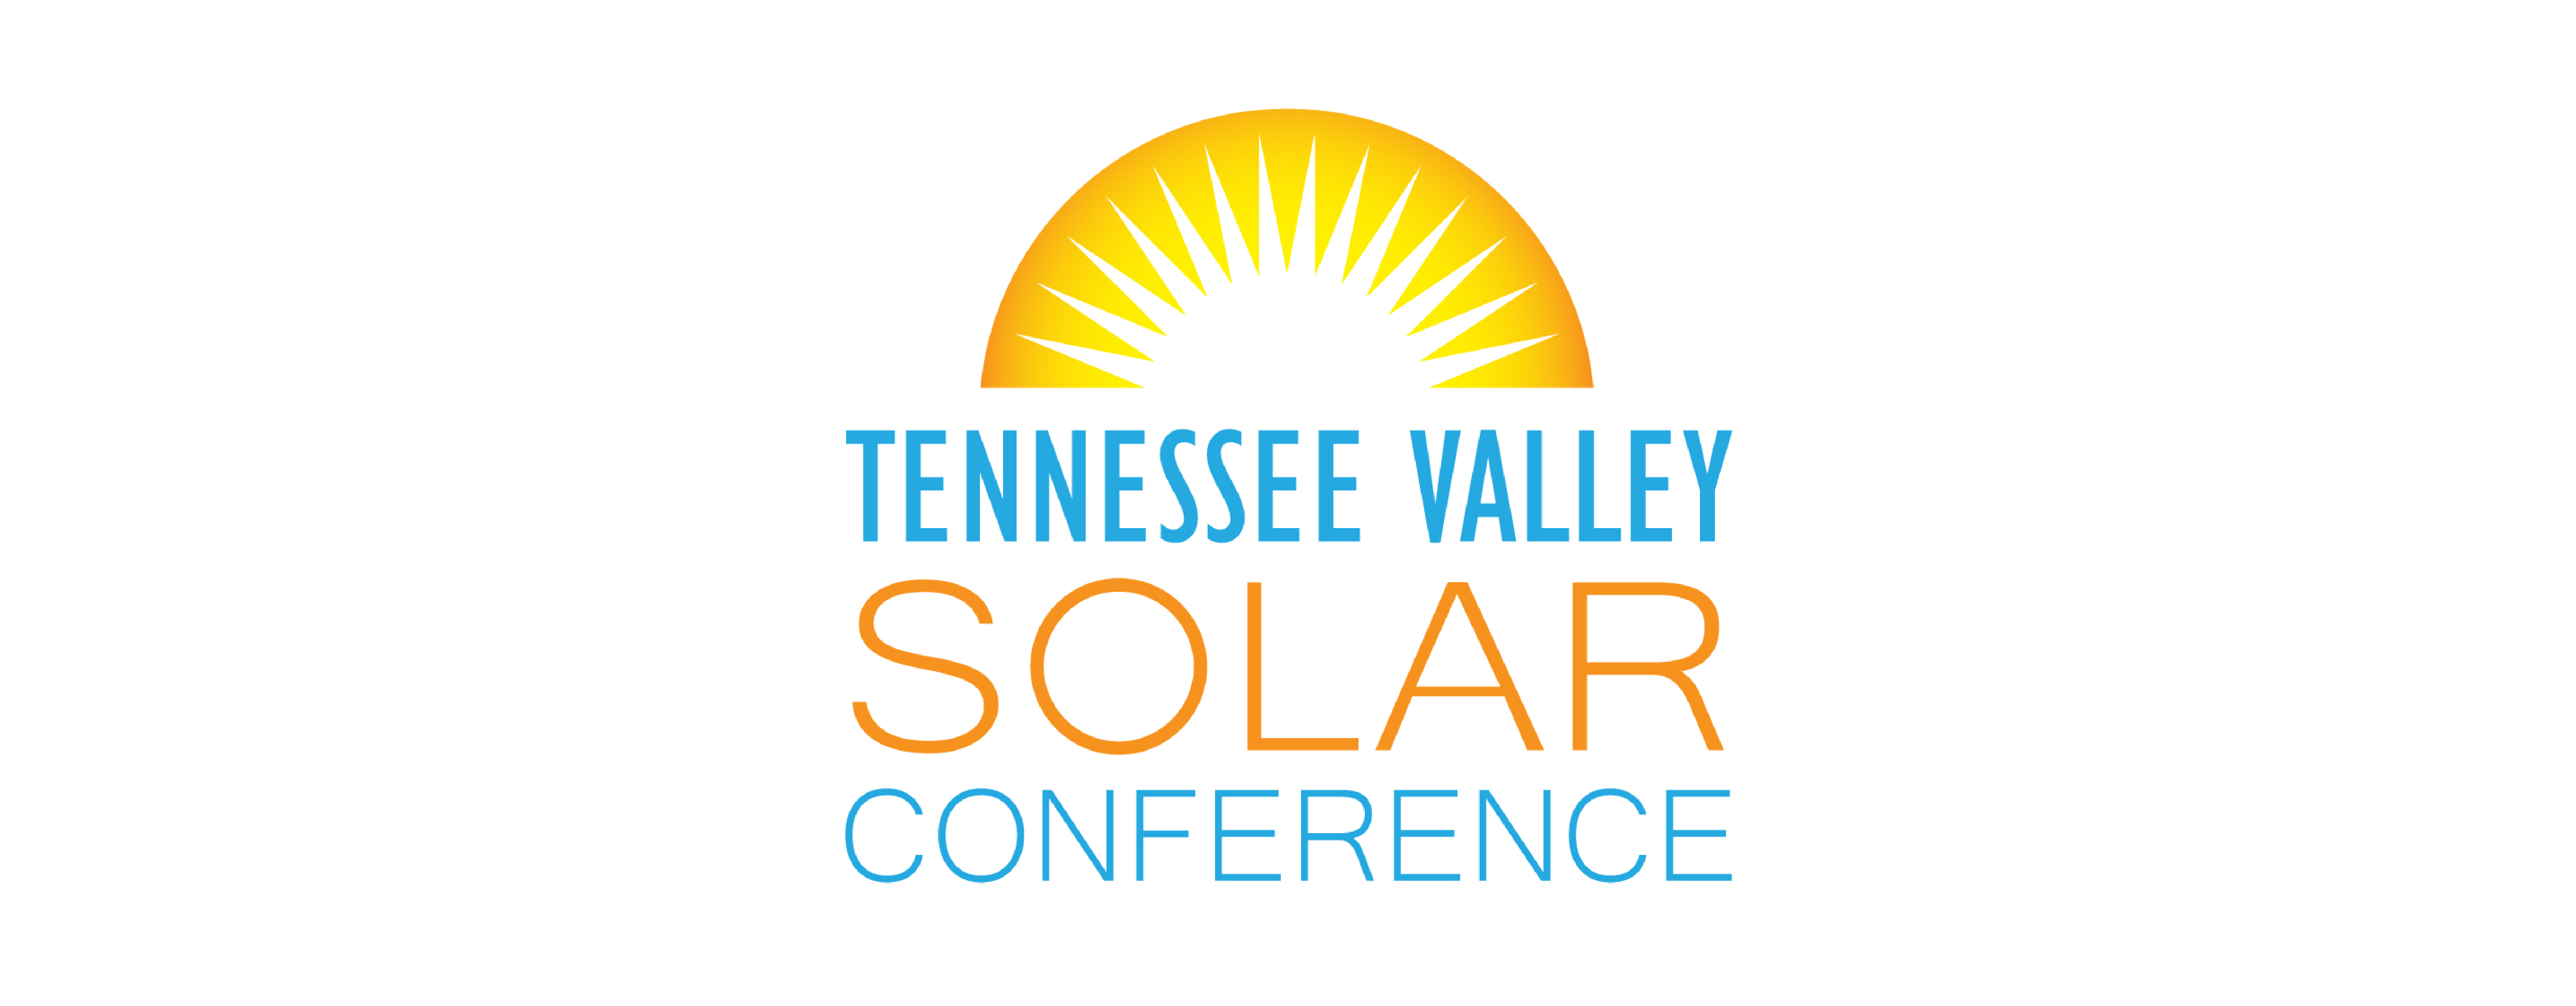 2019 Tennessee Valley Solar Conference | SEIA